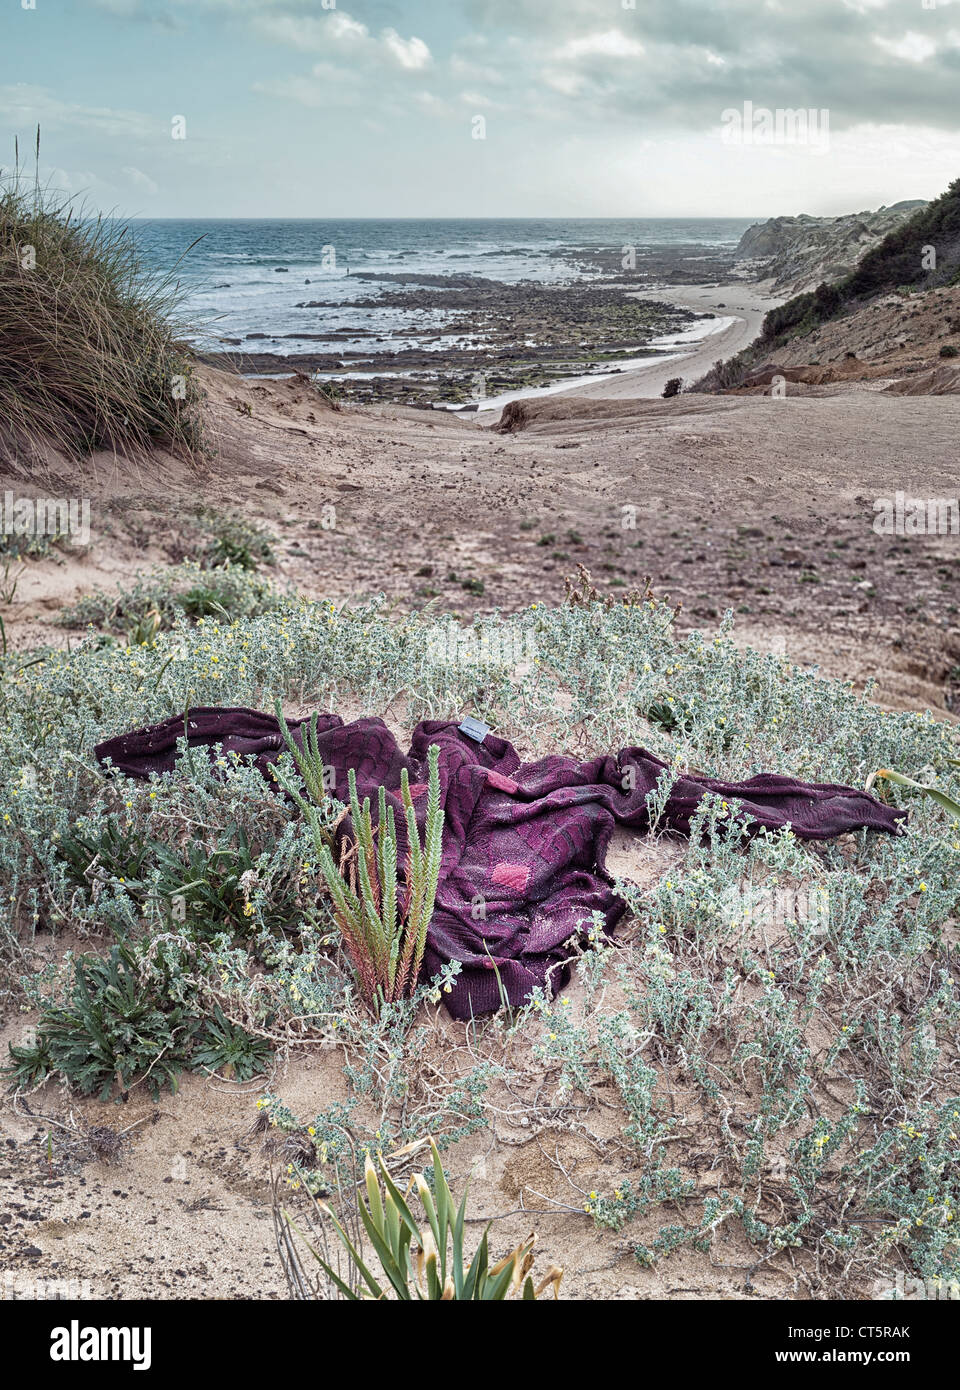 Wet clothes on the beach from a illegal immigrant in Tarifa, Cadiz, Andalusia, Spain. - Stock Image